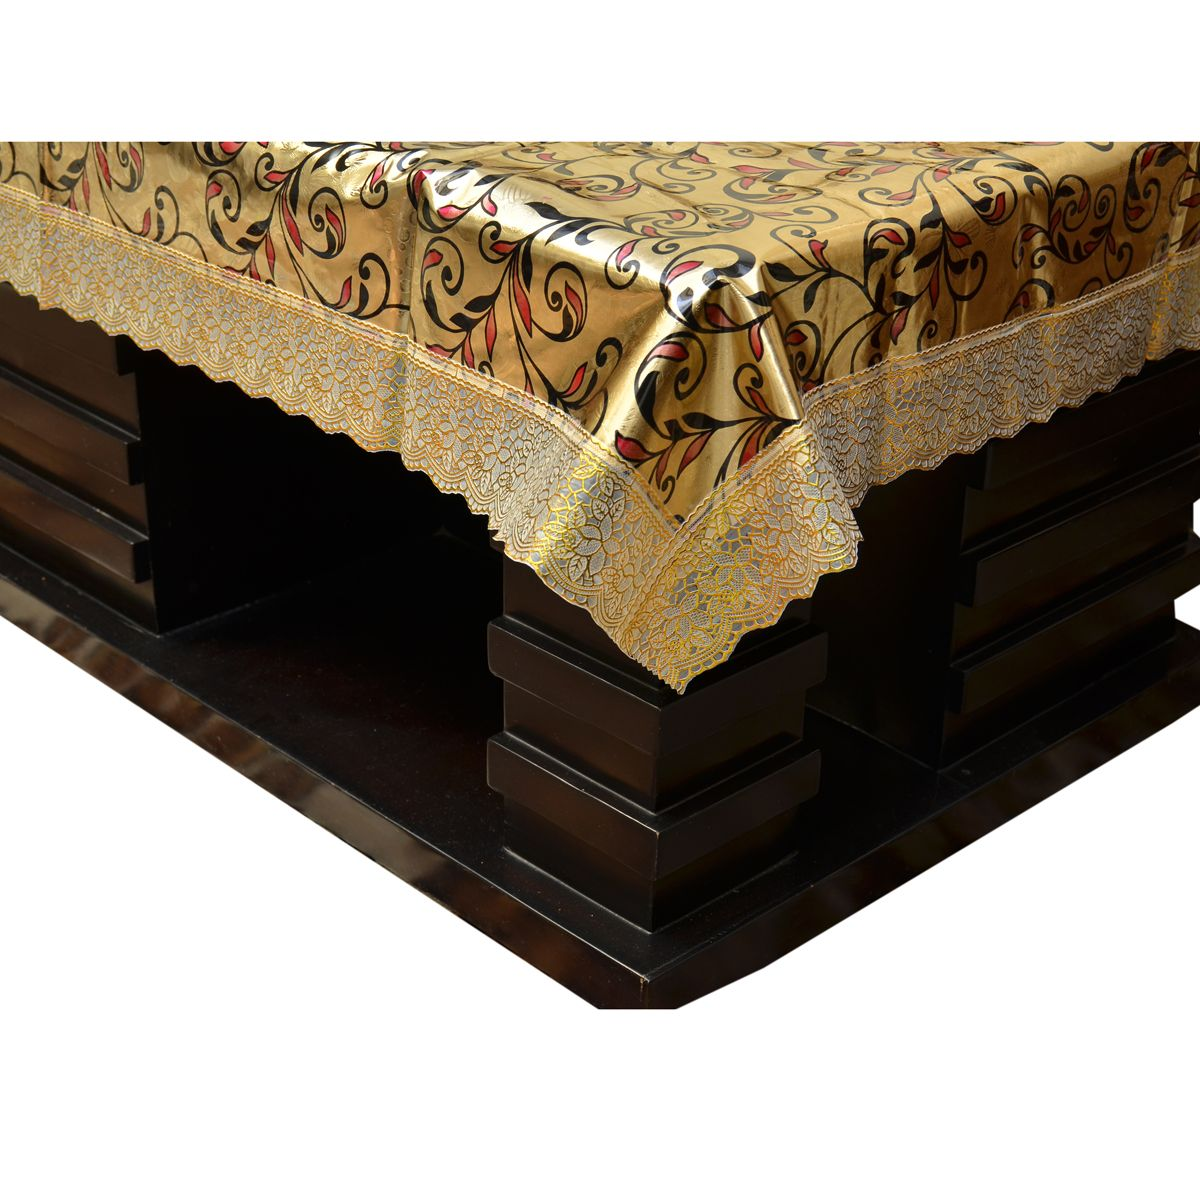 Kuber Industries™ Waterproof Center Table Cover 4 Seater 40*60 Inches (Golden Shining Design) (Code-CT0038)